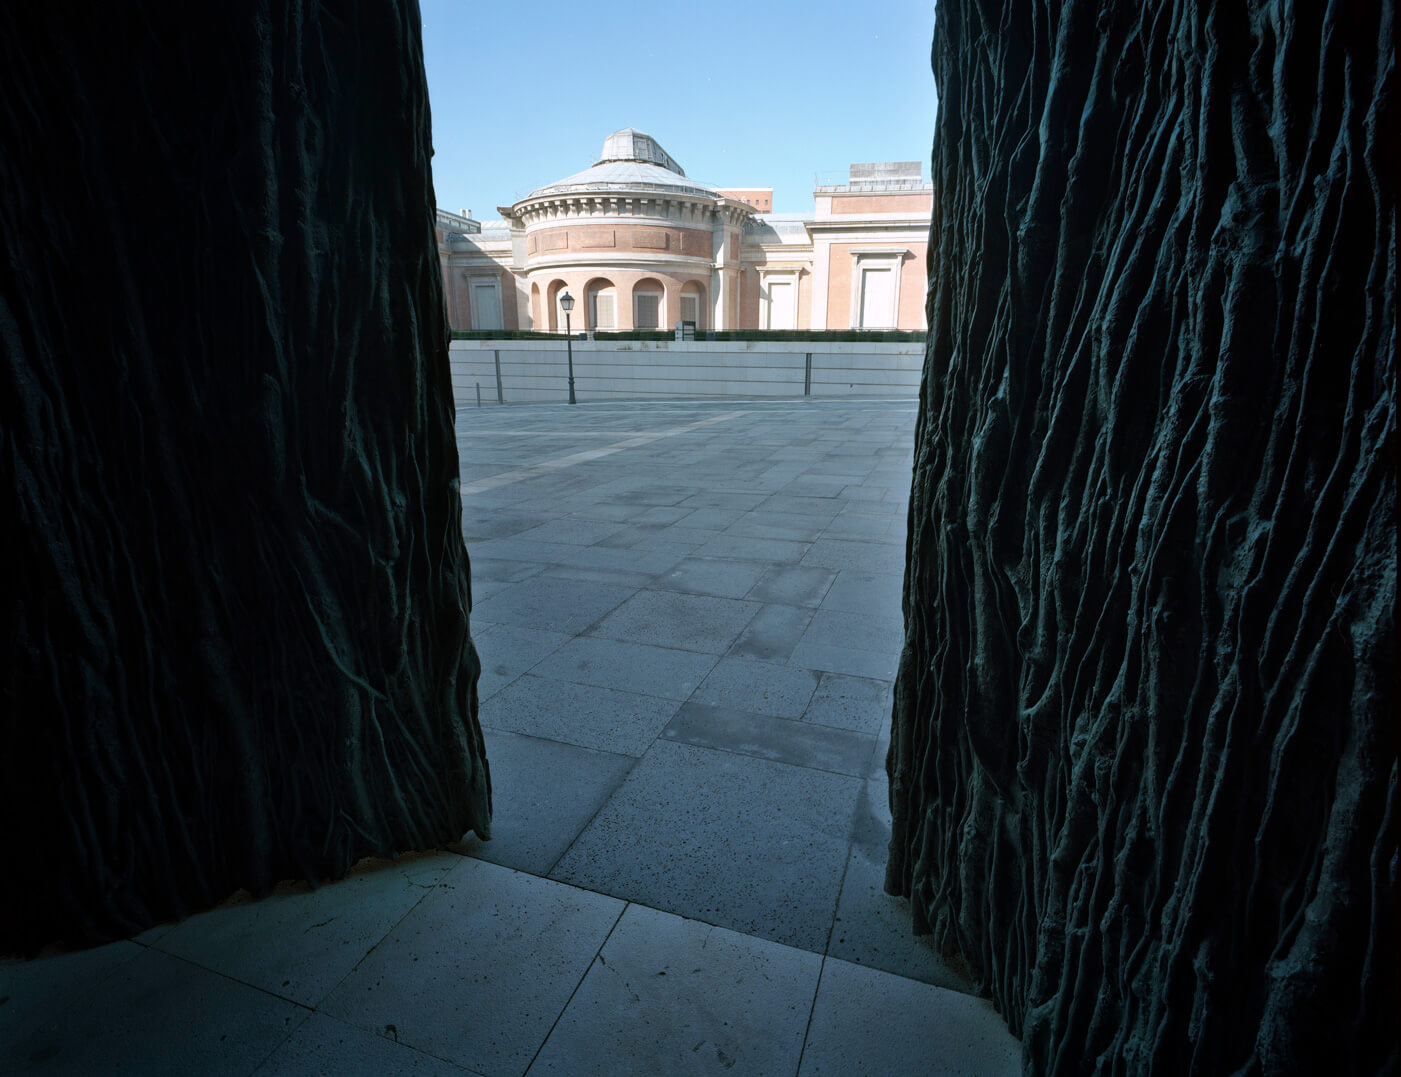 Threshold-Entrance (2006-2007), Museo Nacional del Prado, Madrid, Spain | Cristina Iglesias | Royal Academy Architecture Prize 2020 | STIRworld